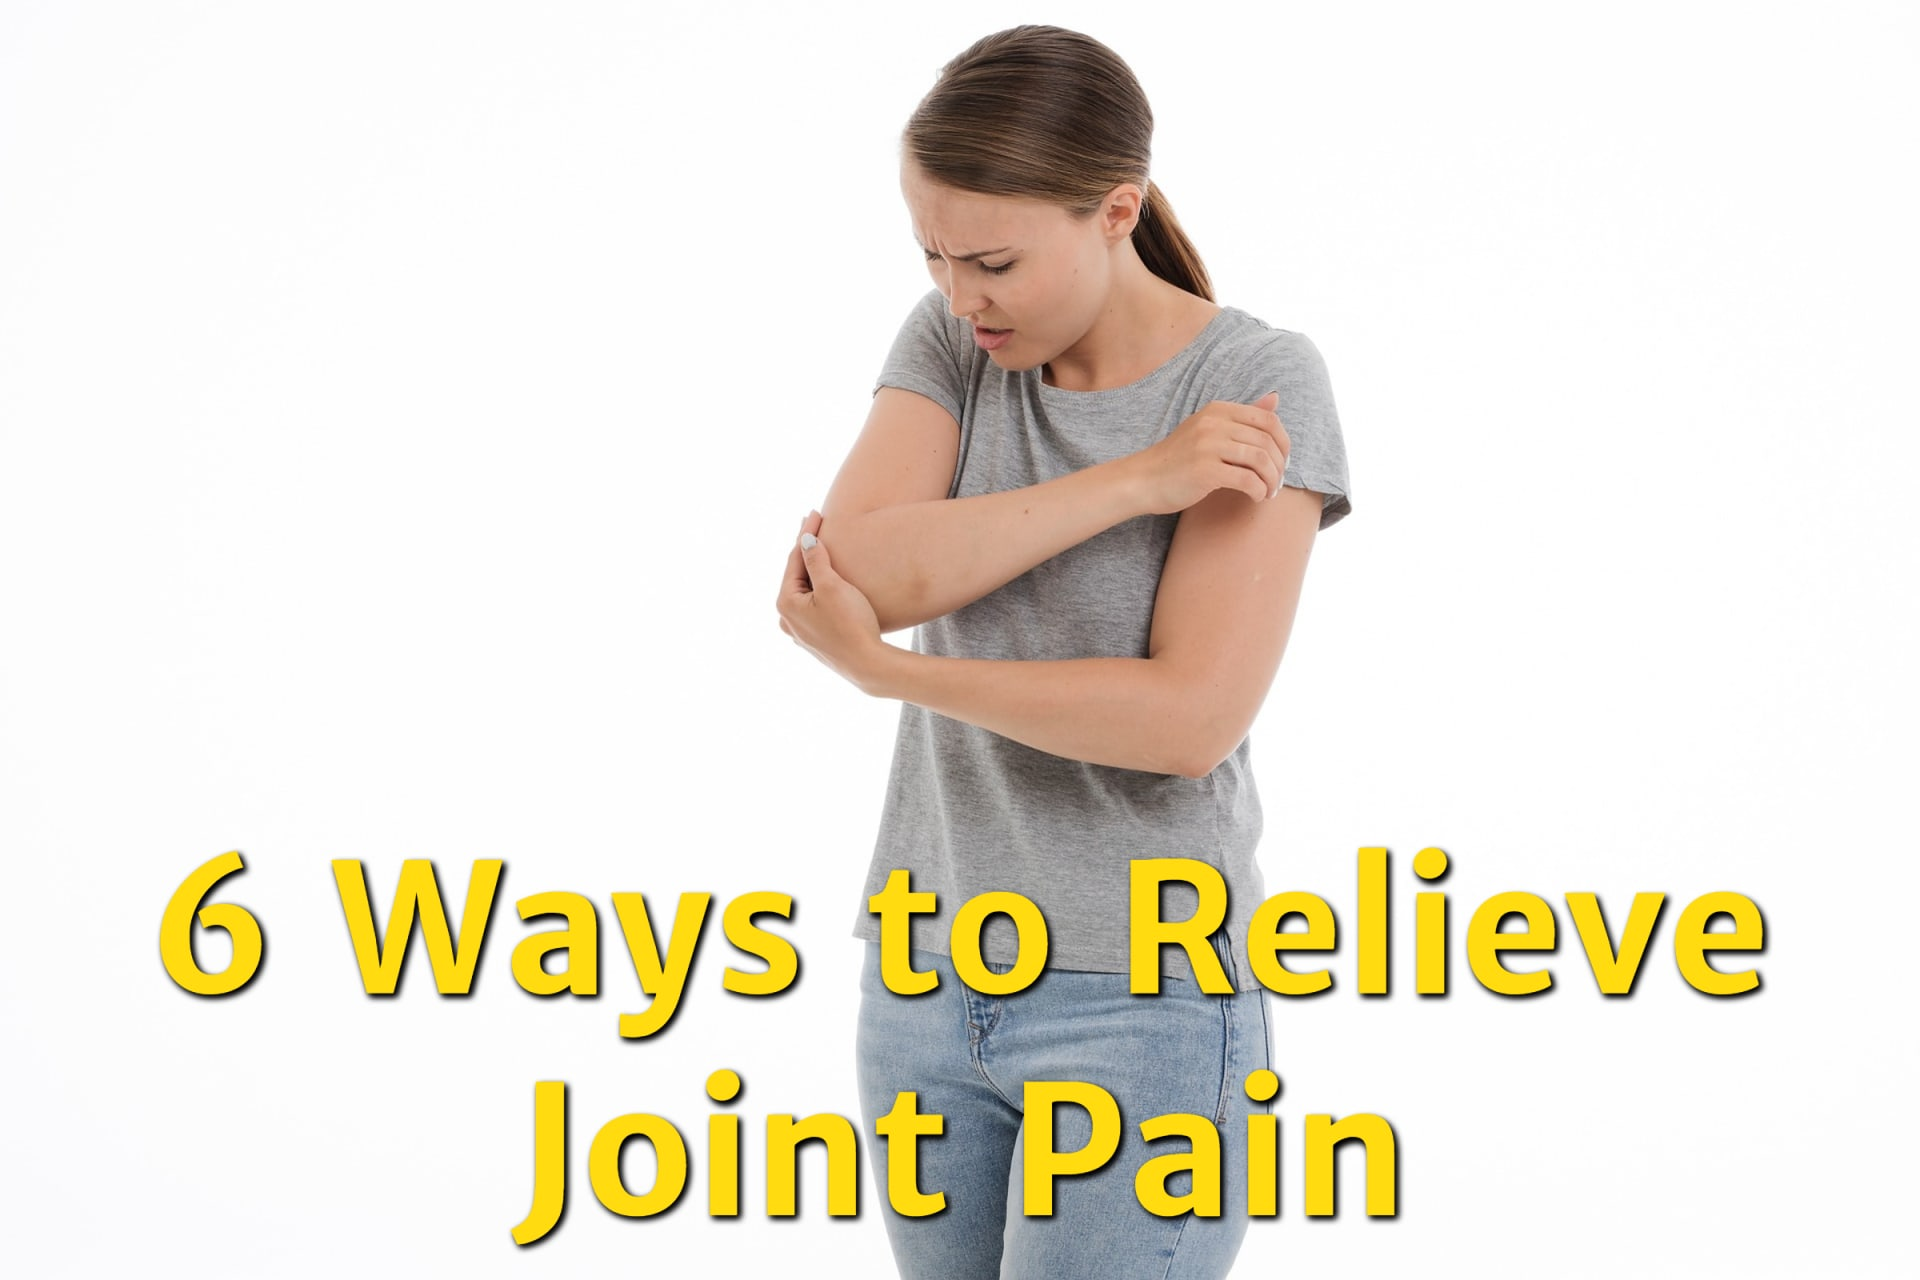 A young woman suffering from painful joints who needs joint pain relief